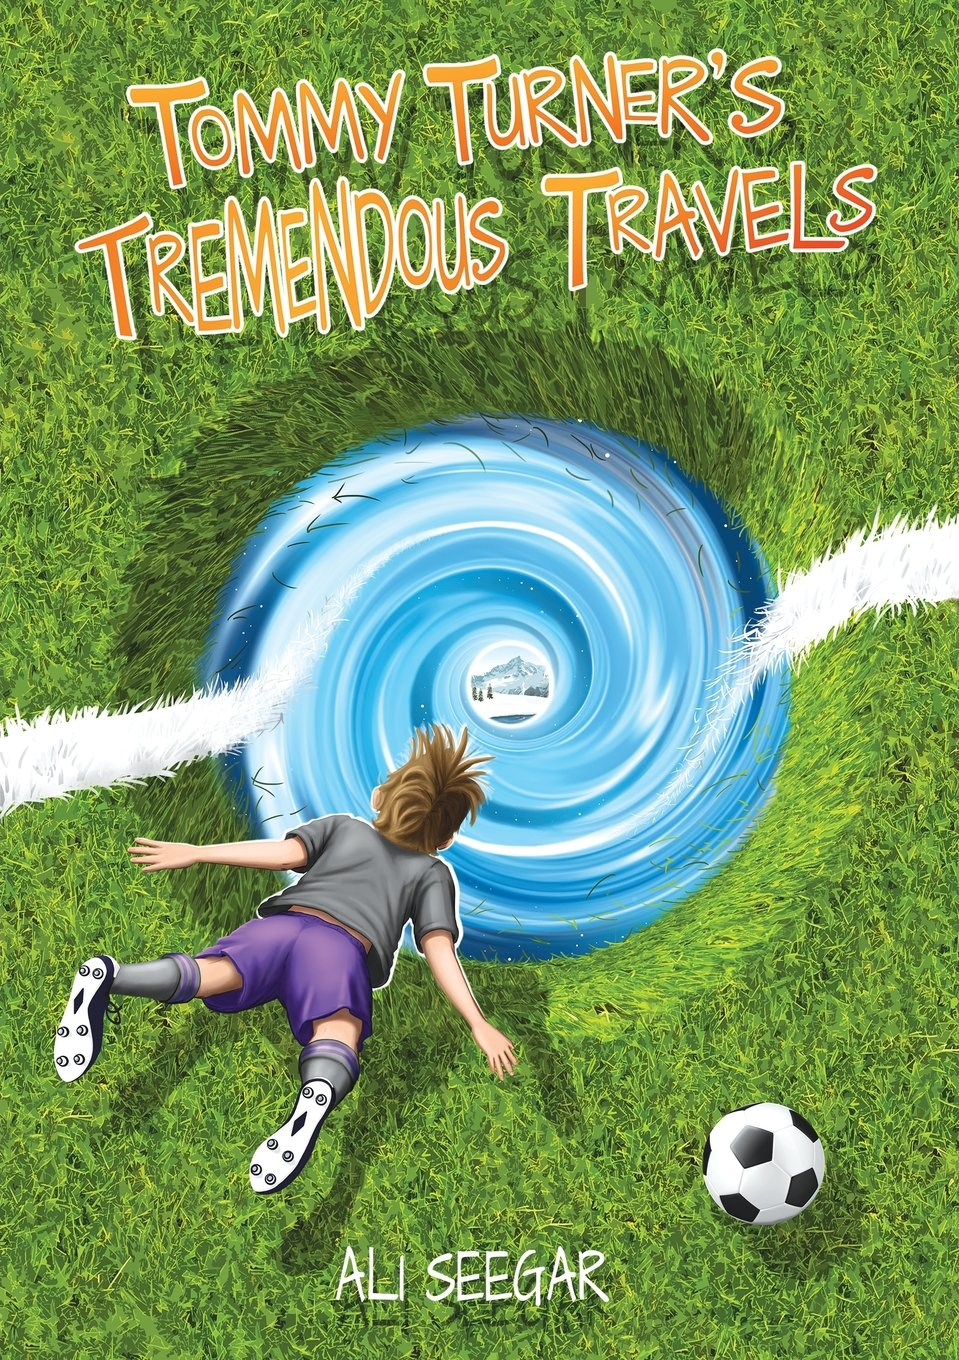 Read Online Tommy Turner's Tremendous Travels PDF